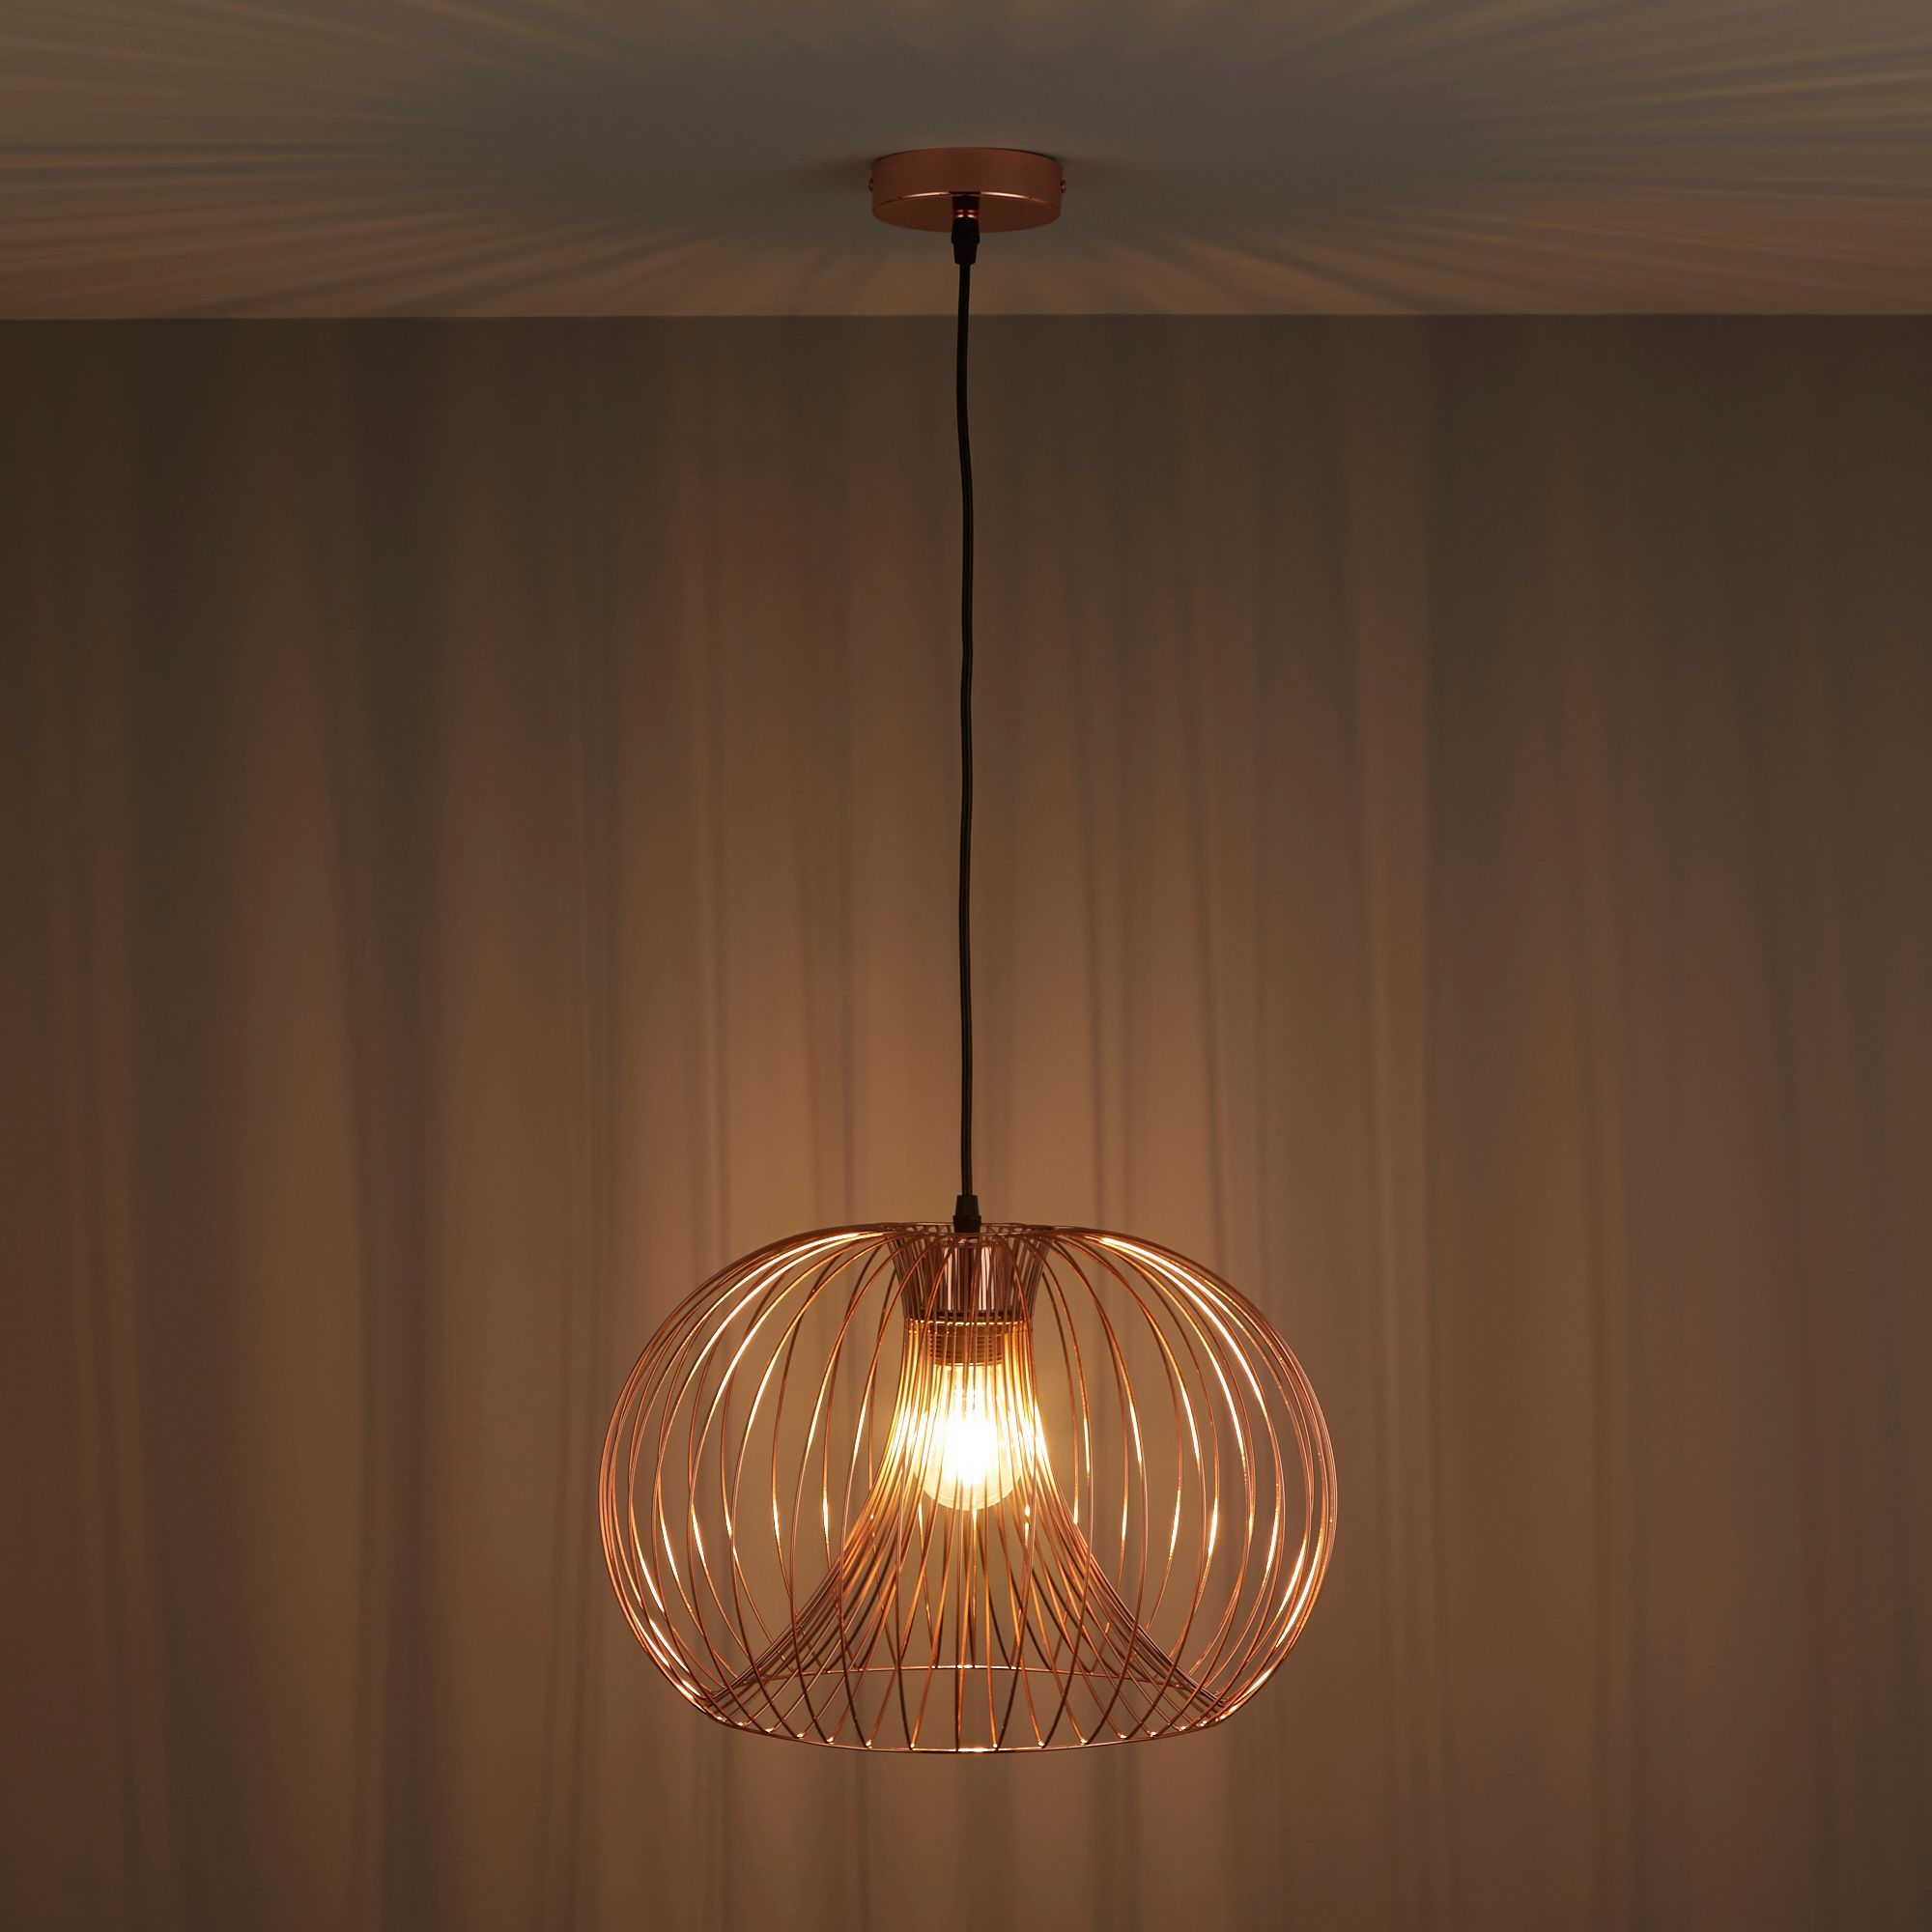 copper pendant light kitchen decorations jonas wire ceiling departments